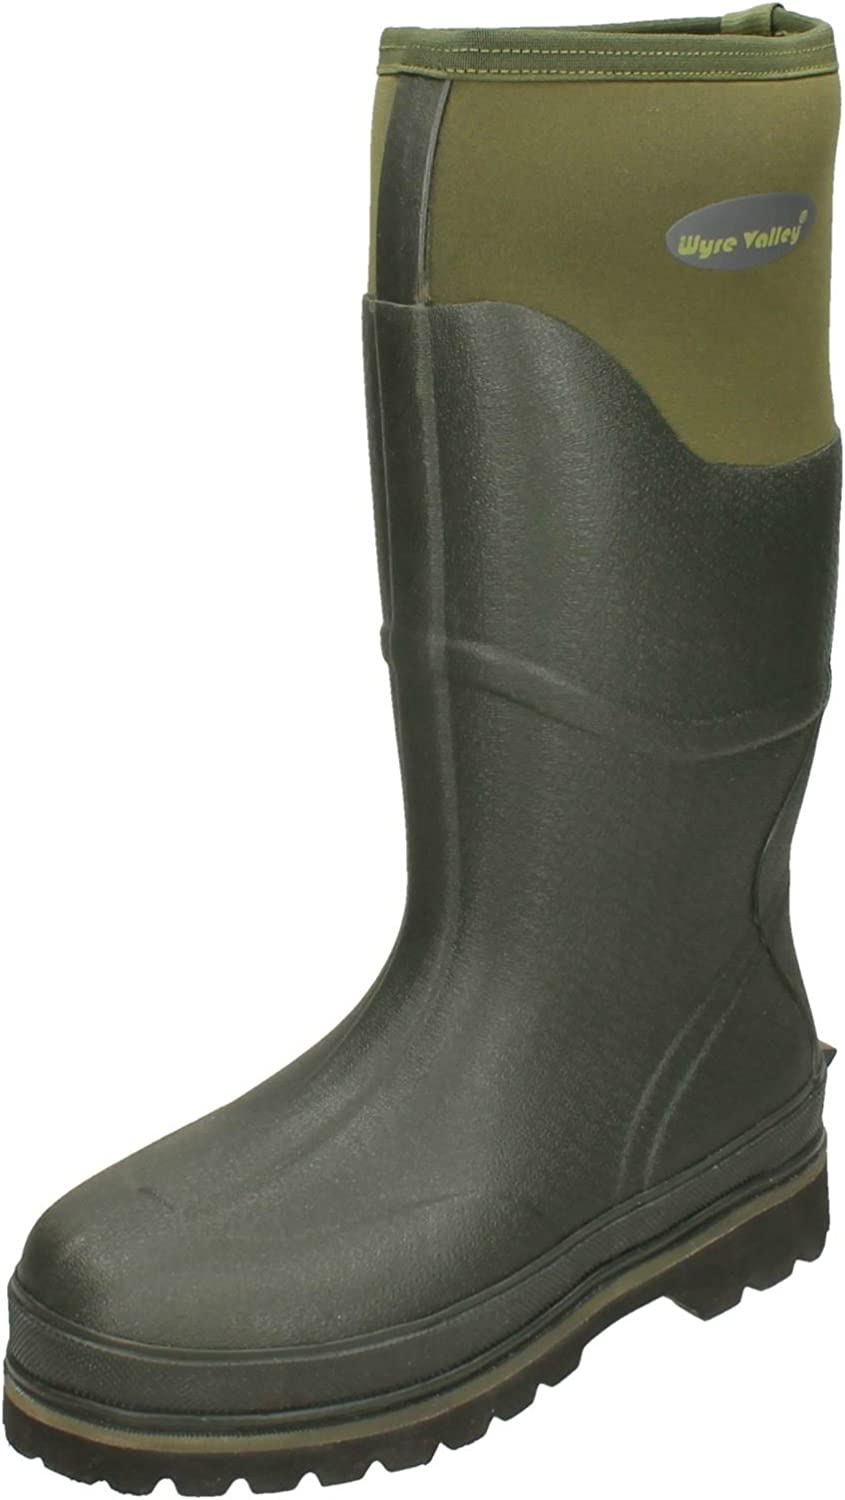 Wyre Valley Mens Outdoor Boots Trent